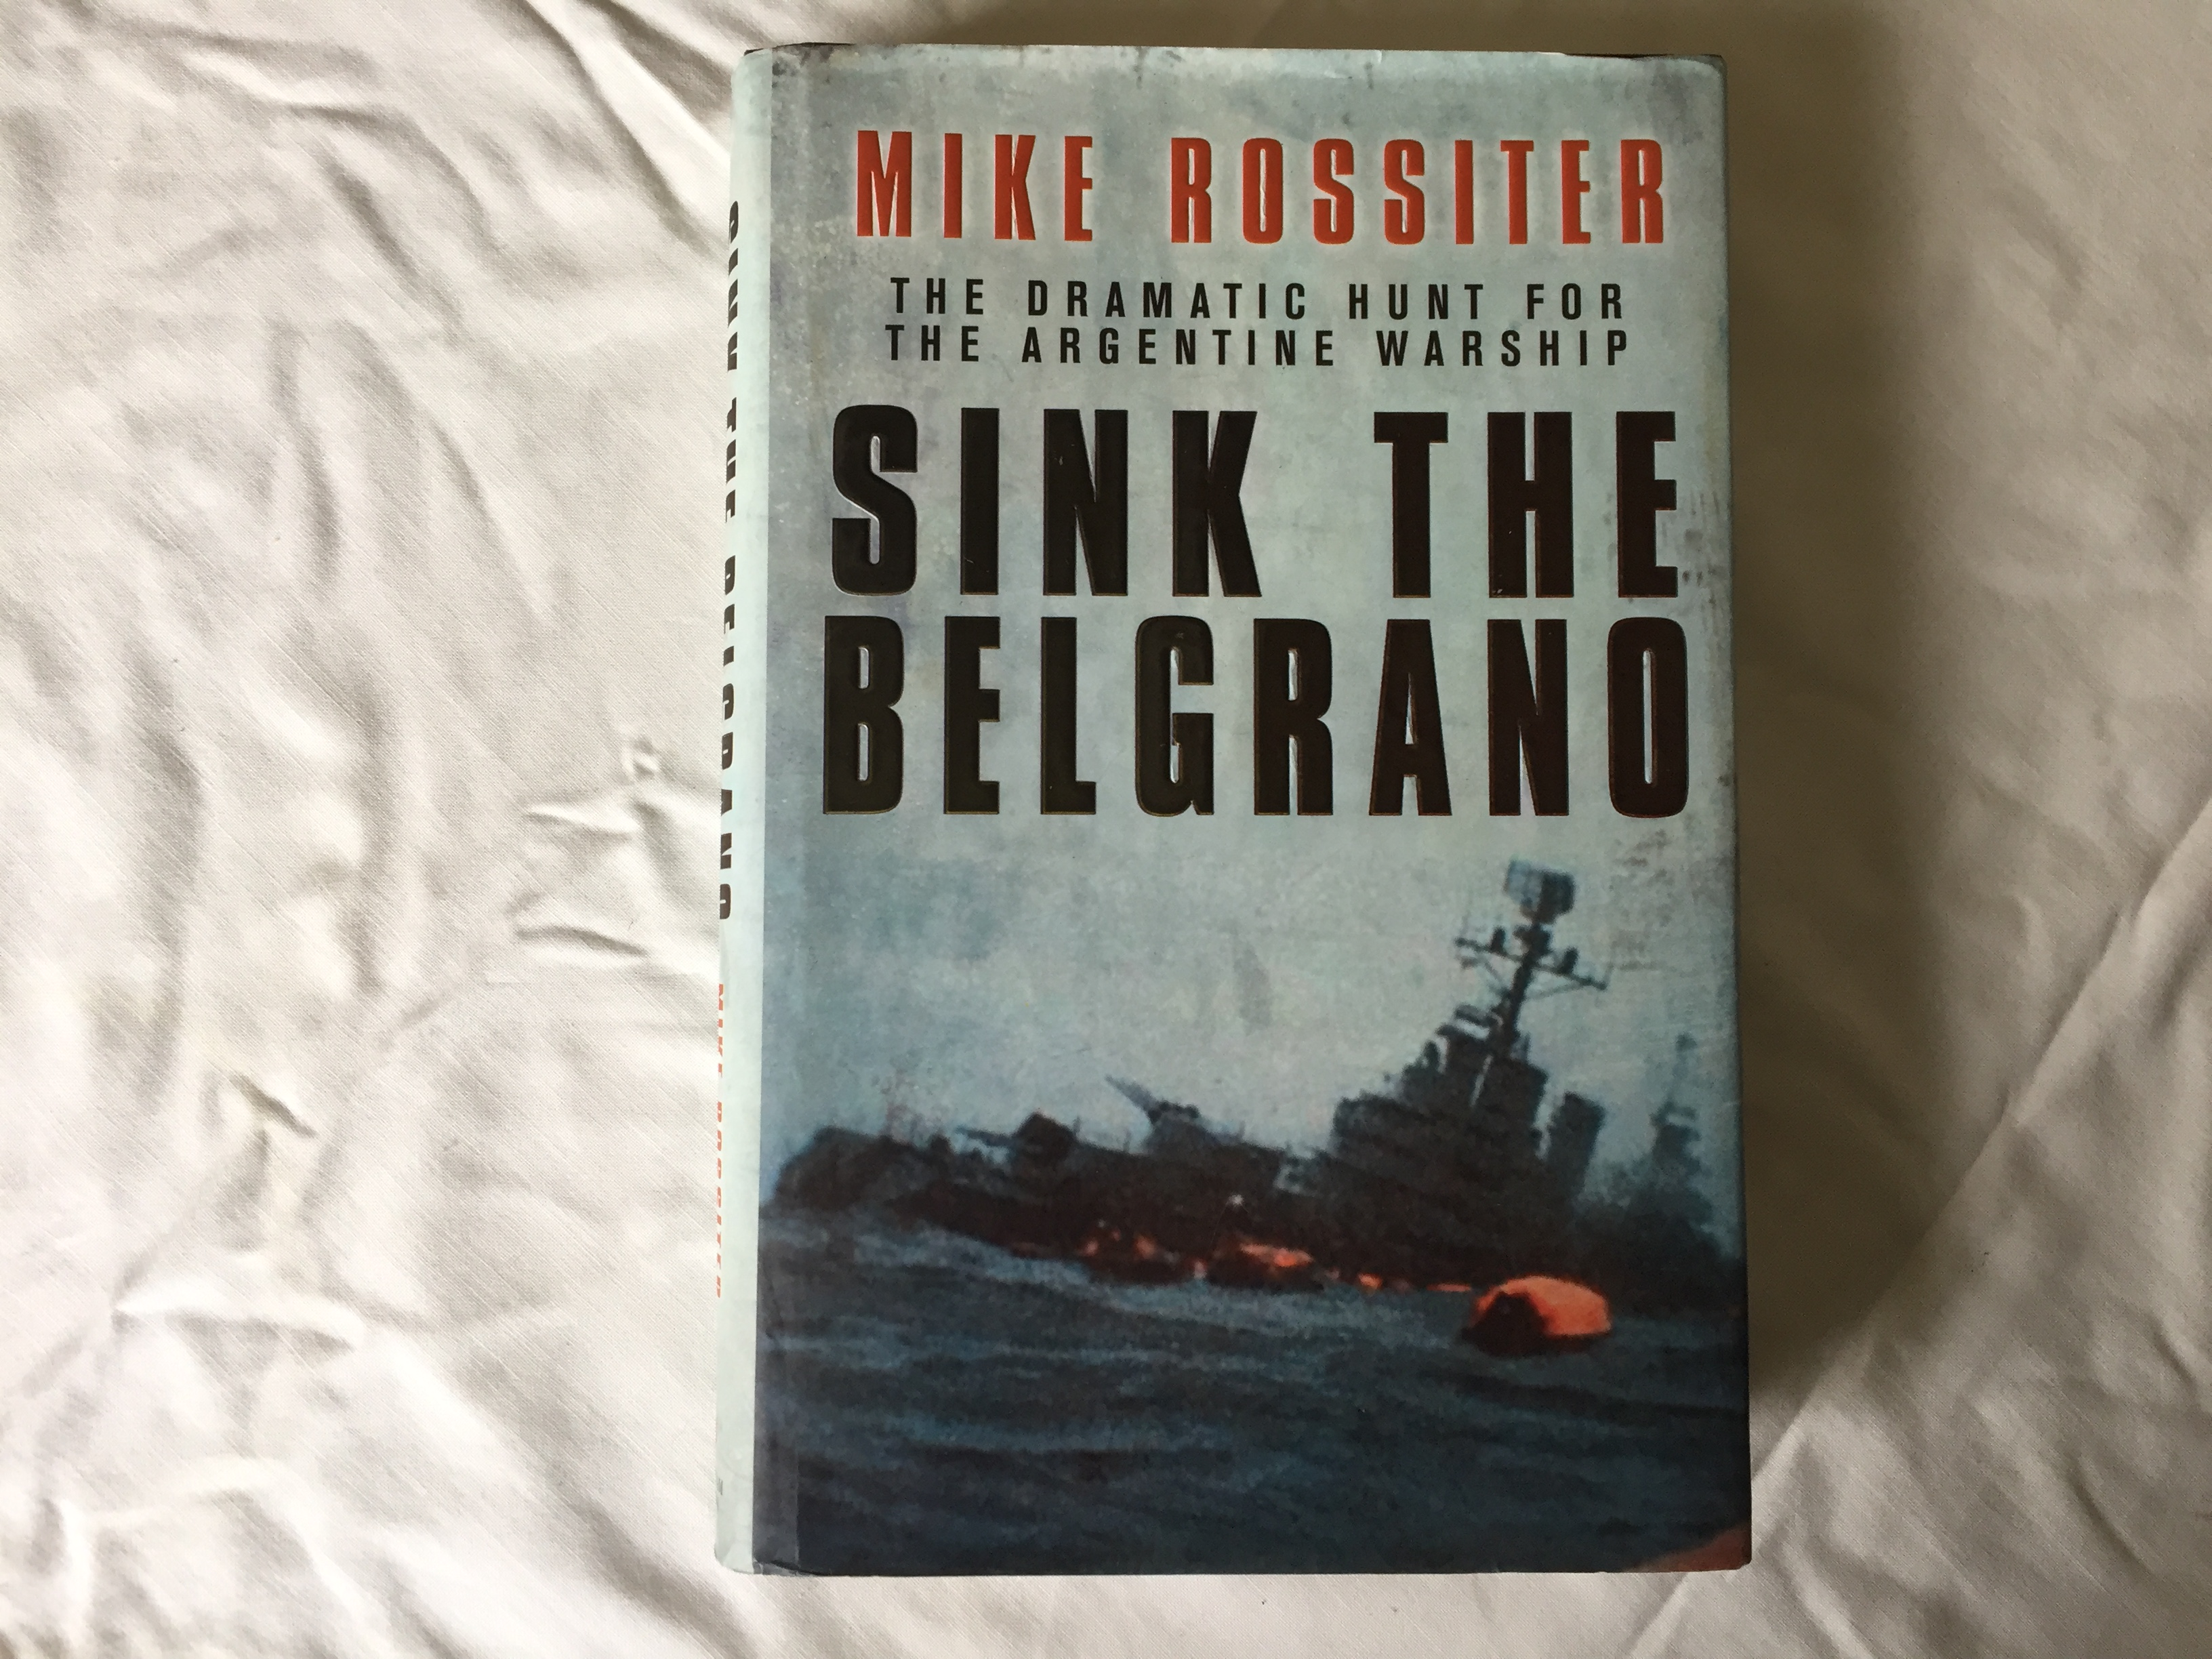 BOOK 'SINK THE BELGRANO' BY MIKE ROSSITER